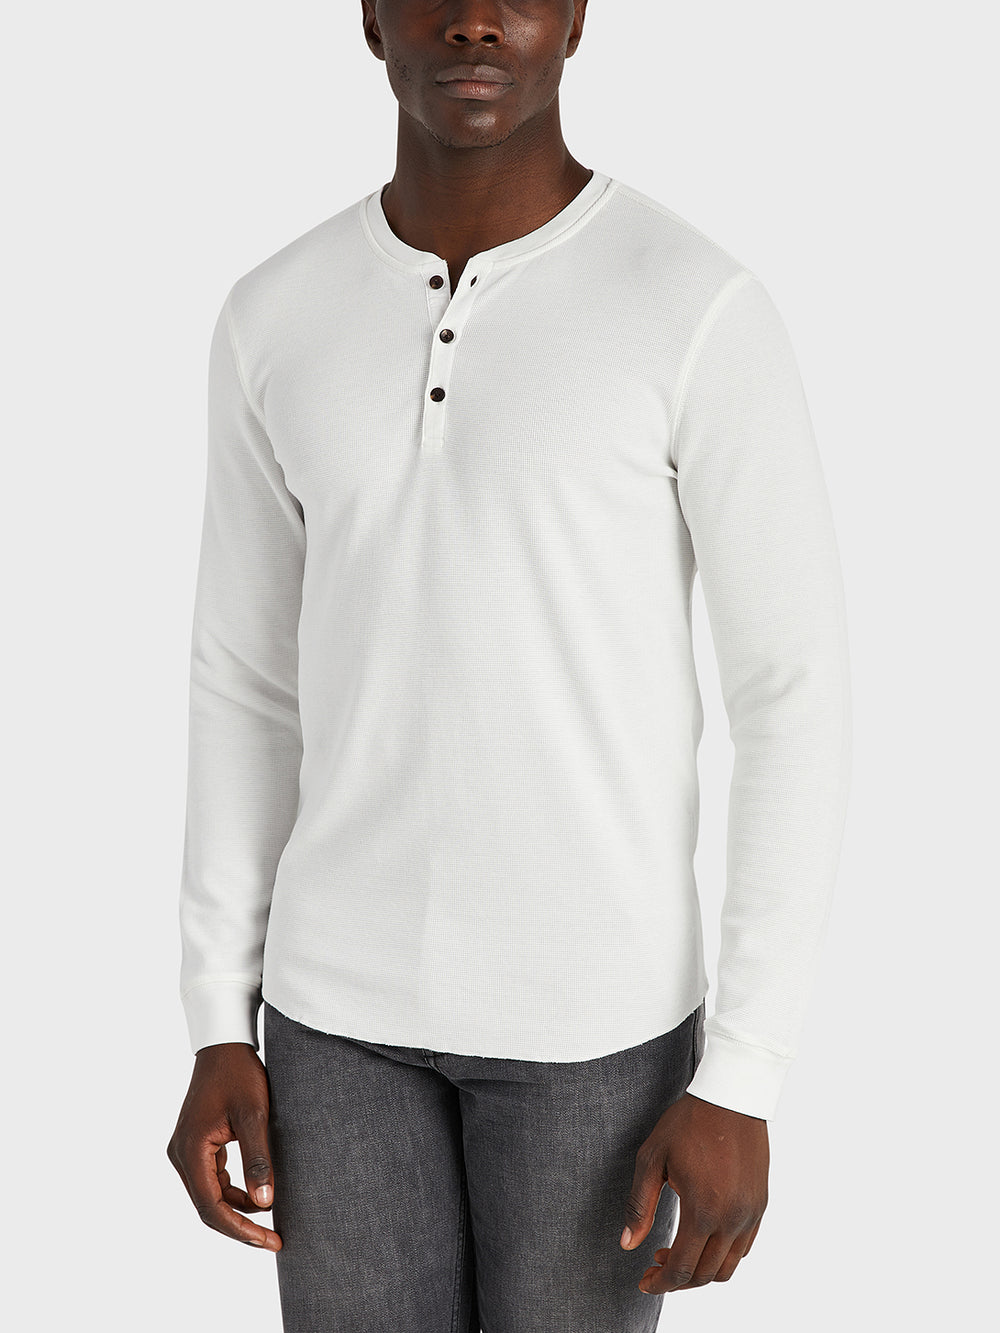 ons clothing men's long sleeve waffle henley color White